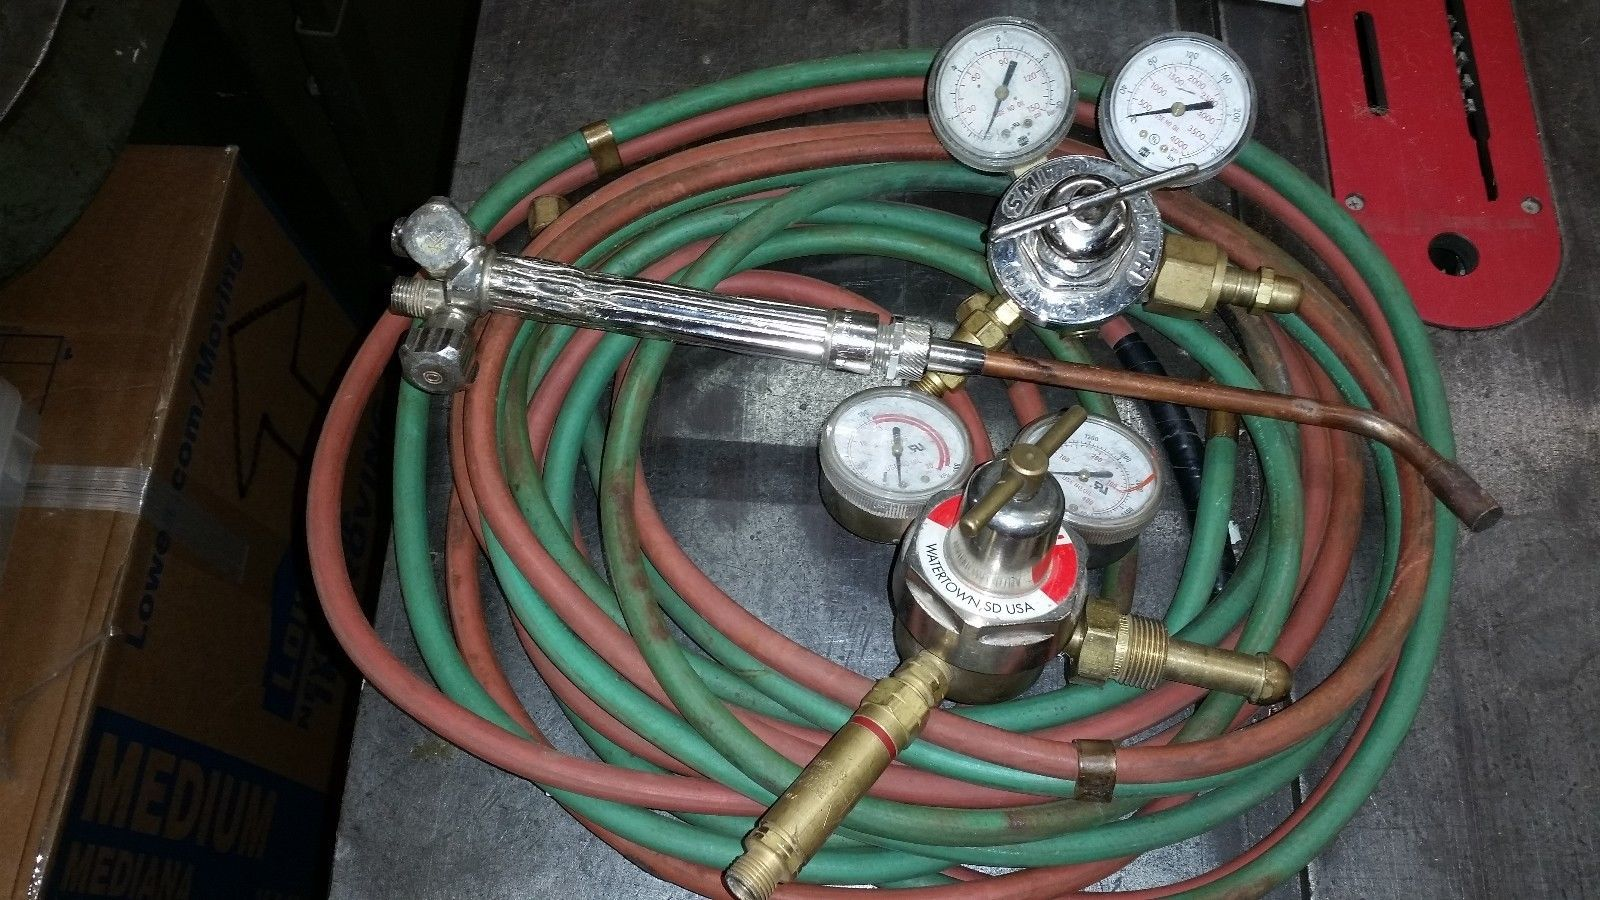 Miller Smith medium duty oxy acetylene gas welding & cutting torch outfit 3